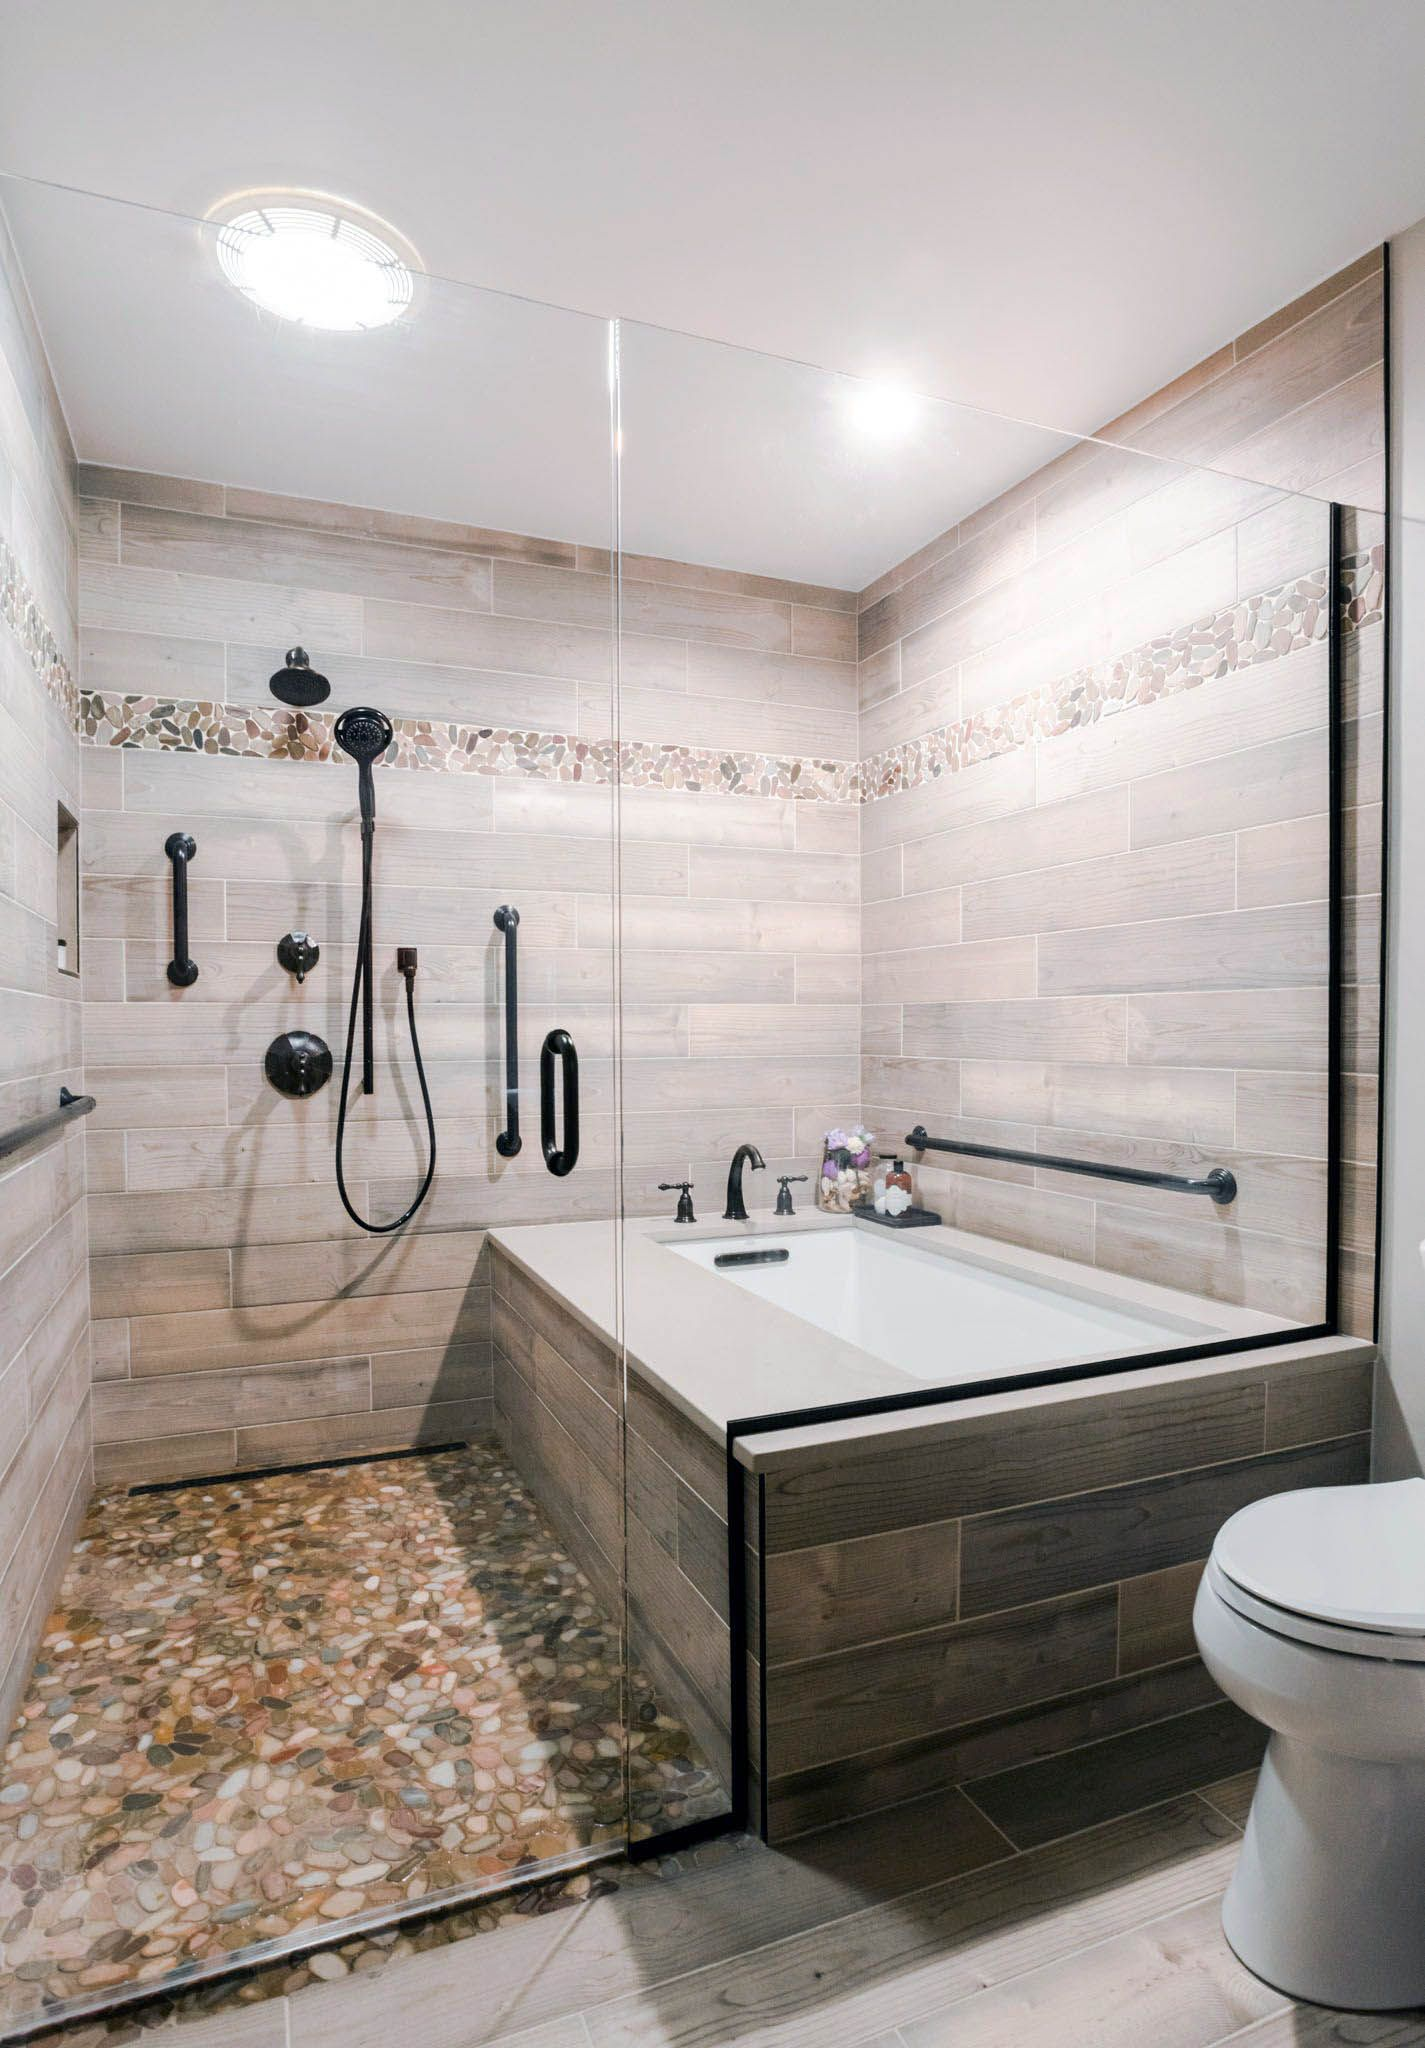 Remarkable Master Bathroom Remodel Ideas 2017 For Your Home